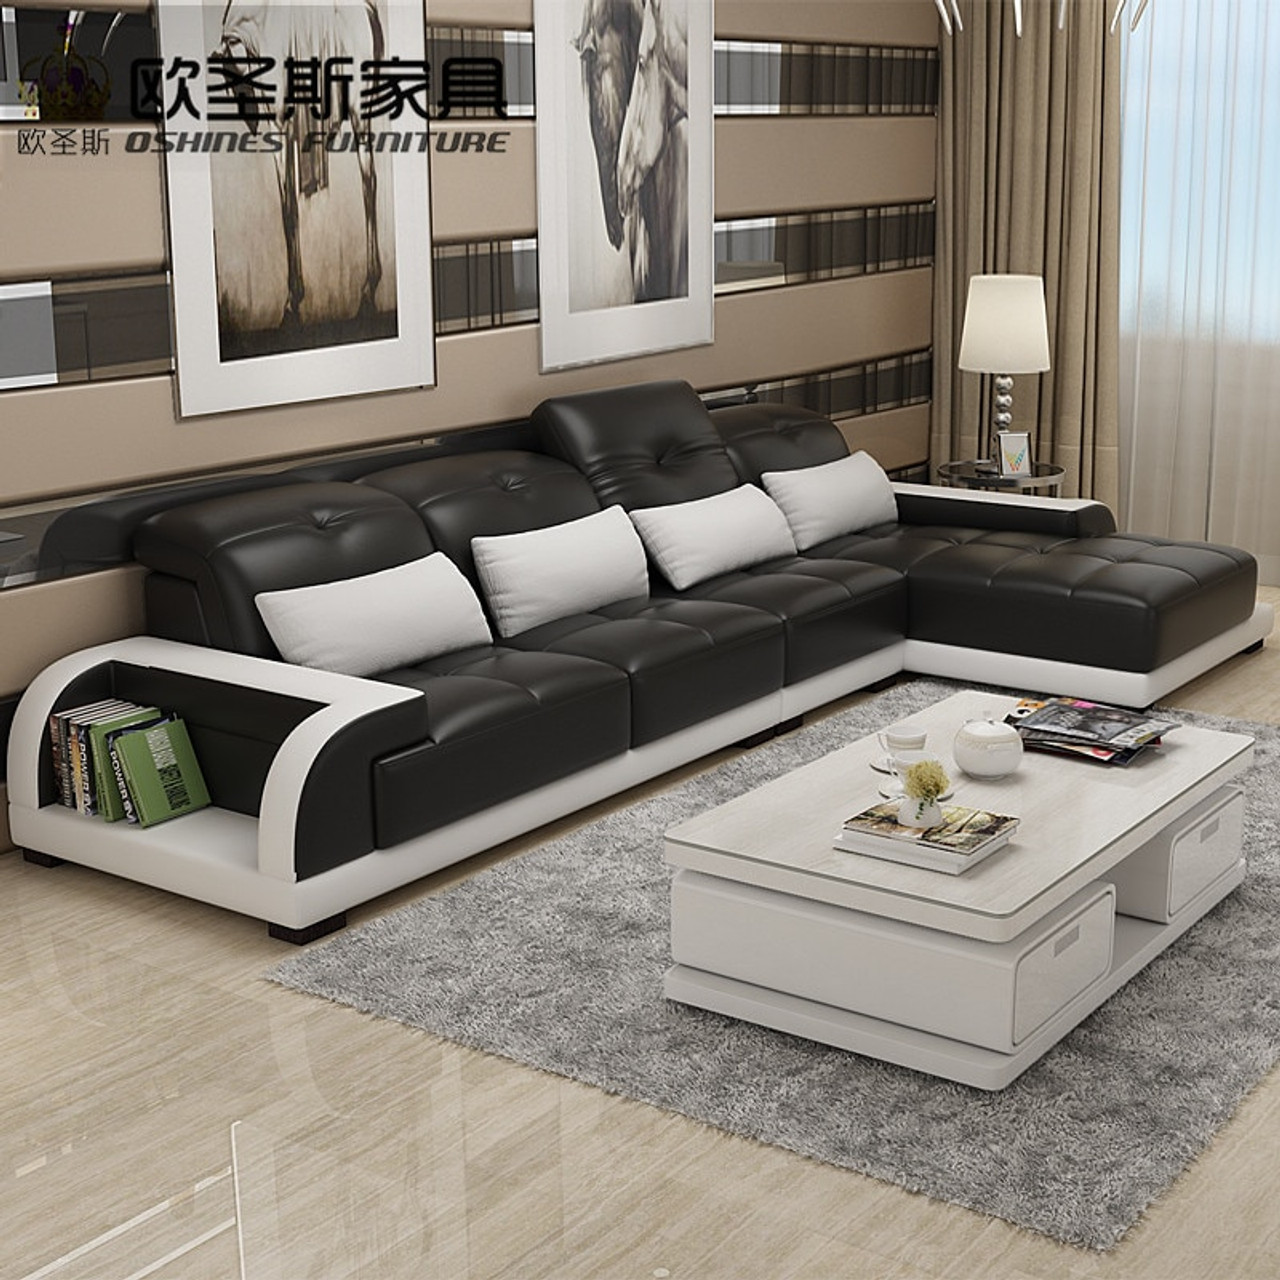 Cheers Barcelona Black And Big White Stitching L Shaped Modern Design Sectional Soft Cow Leather Sofa Set Living Room Furniture Onshopdeals Com